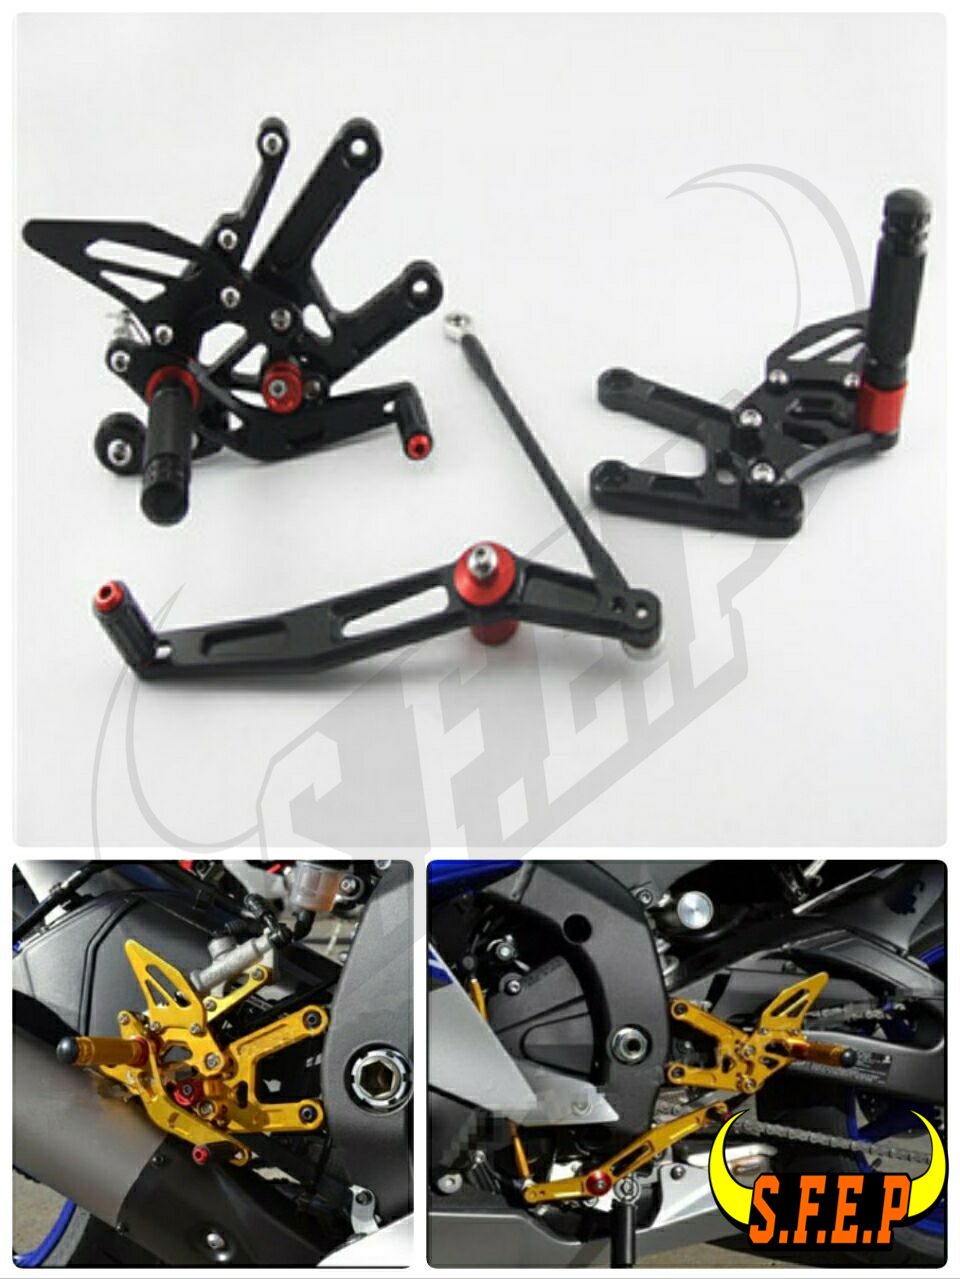 CNC Adjustable Rearsets Rear Sets foot pegs For Yamaha YZF-R6 2006-2016 free shipping motorcycle parts silver cnc rearsets foot pegs rear set for yamaha yzf r6 2006 2010 2007 2008 motorcycle foot pegs